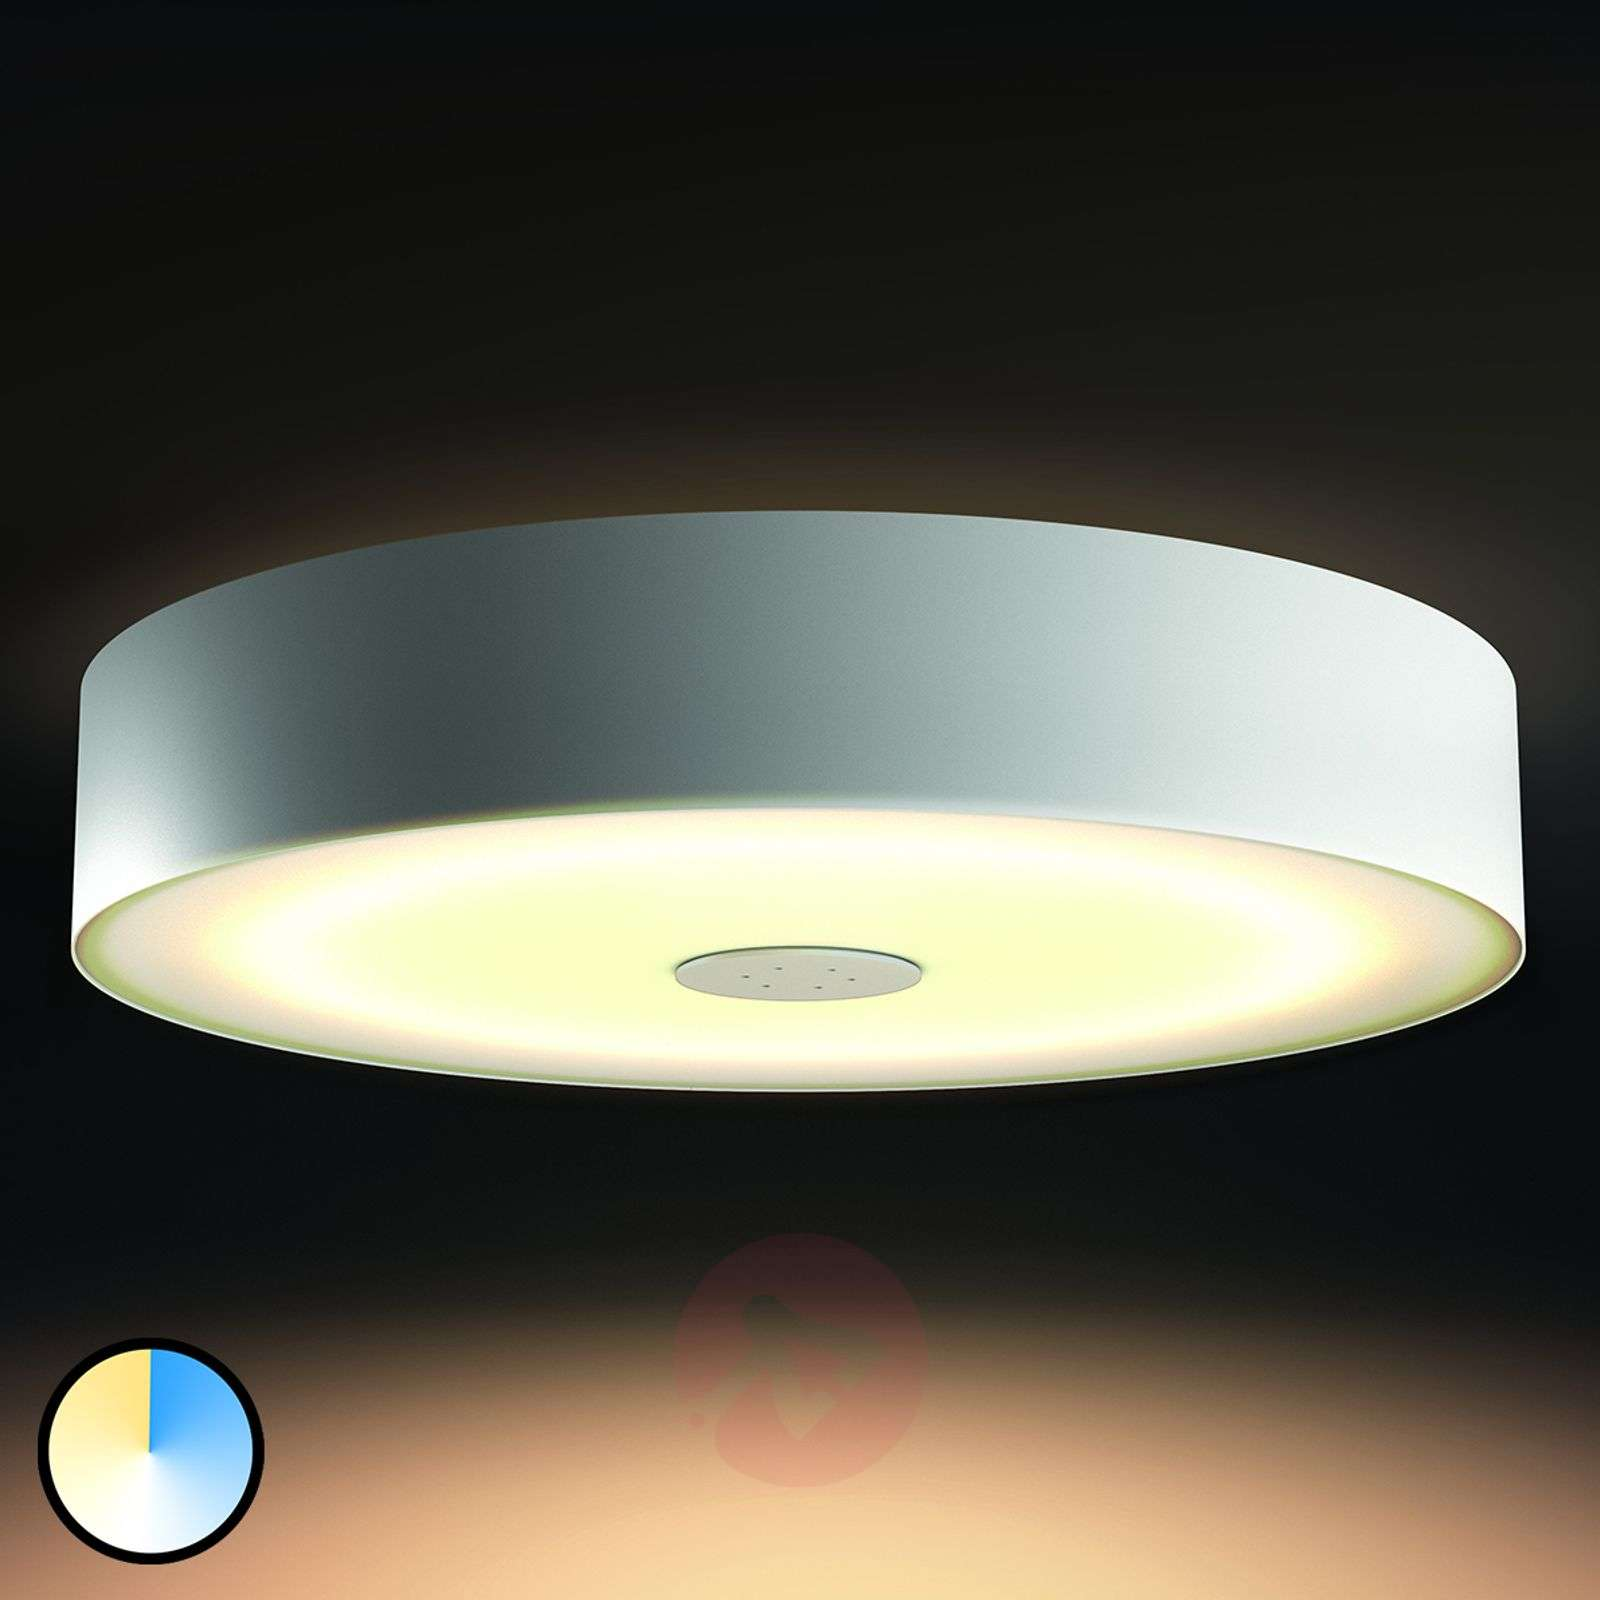 Plafoniere A Led Per Esterno Prezzi : Acquista plafoniera a led fair philips hue lampade.it